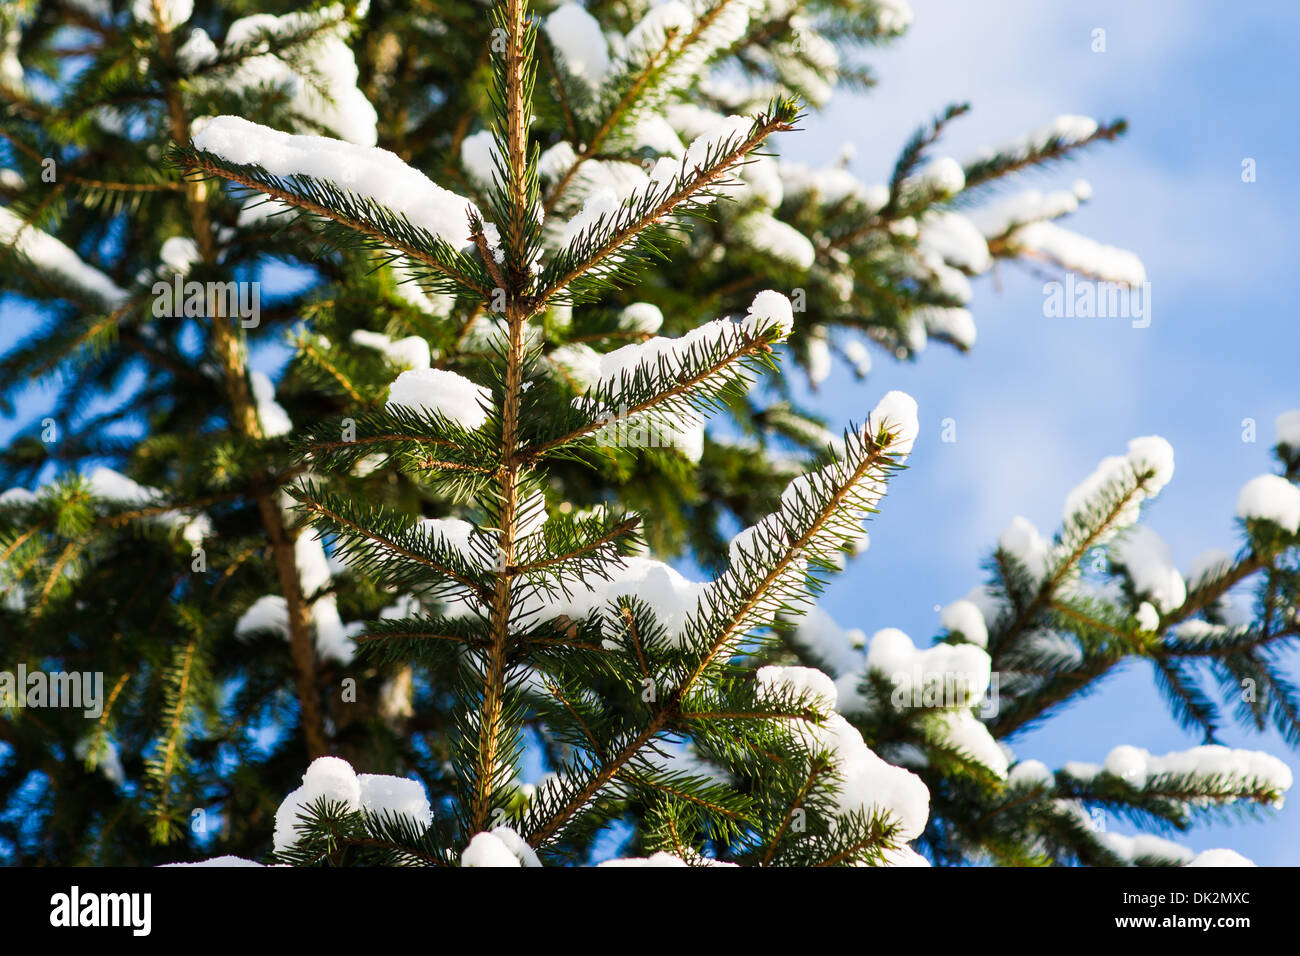 Christmas Tree 6. Closeup view of a spruce tree, covered with fresh snow. The evergreen joyfulness of Christmas holidays - Stock Image